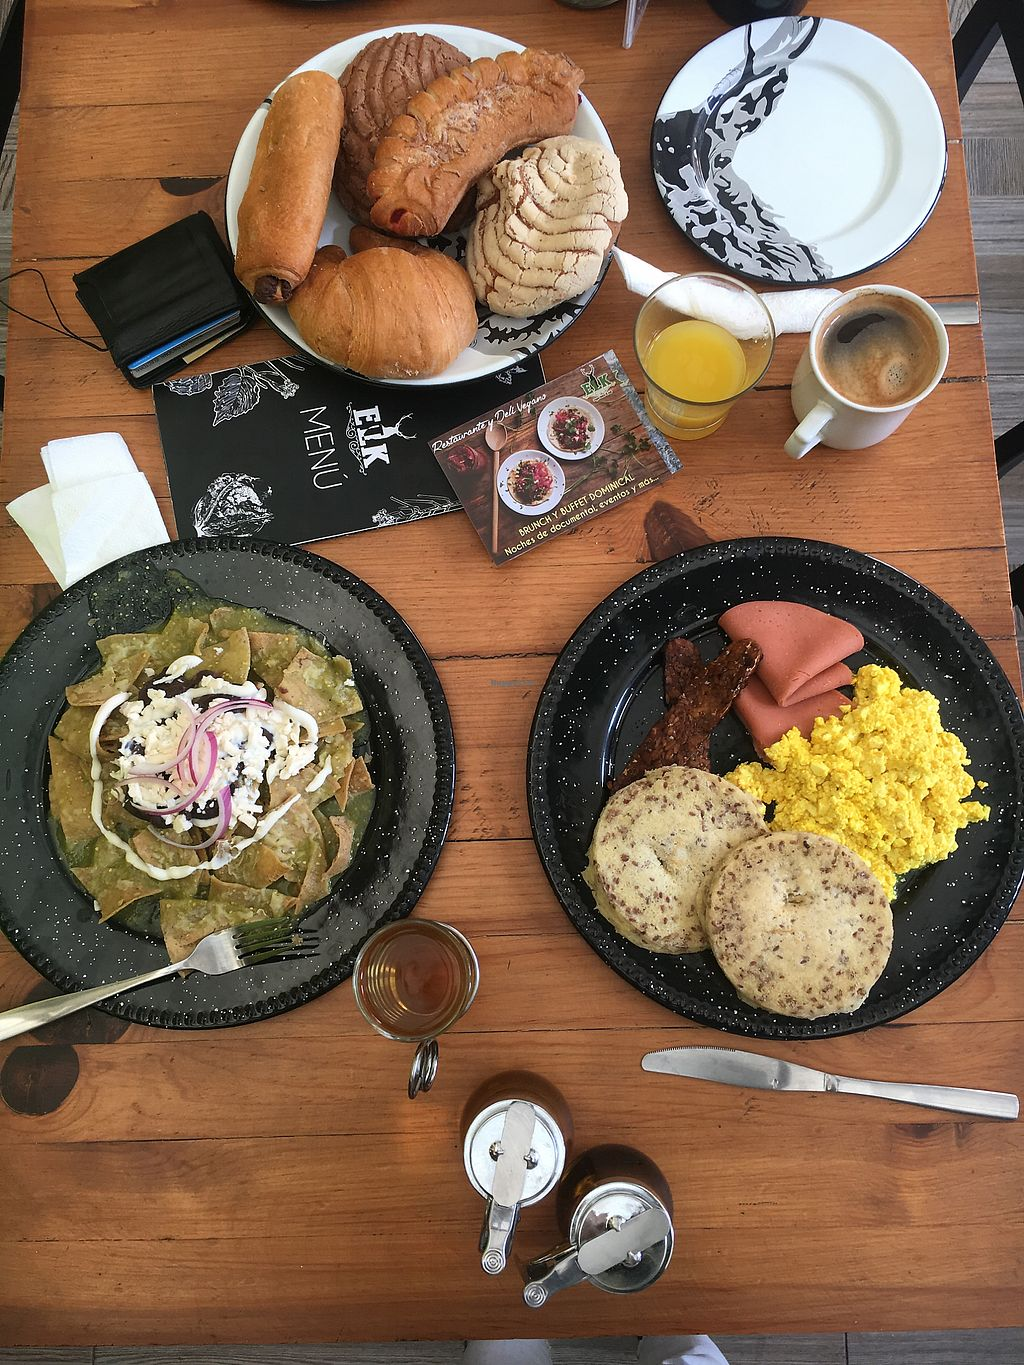 """Photo of Vegan Ville  by <a href=""""/members/profile/BetzabelBetzabel"""">BetzabelBetzabel</a> <br/>Desayuno americano y chilaquiles verdes. Delicioso! <br/> January 5, 2018  - <a href='/contact/abuse/image/67275/343104'>Report</a>"""